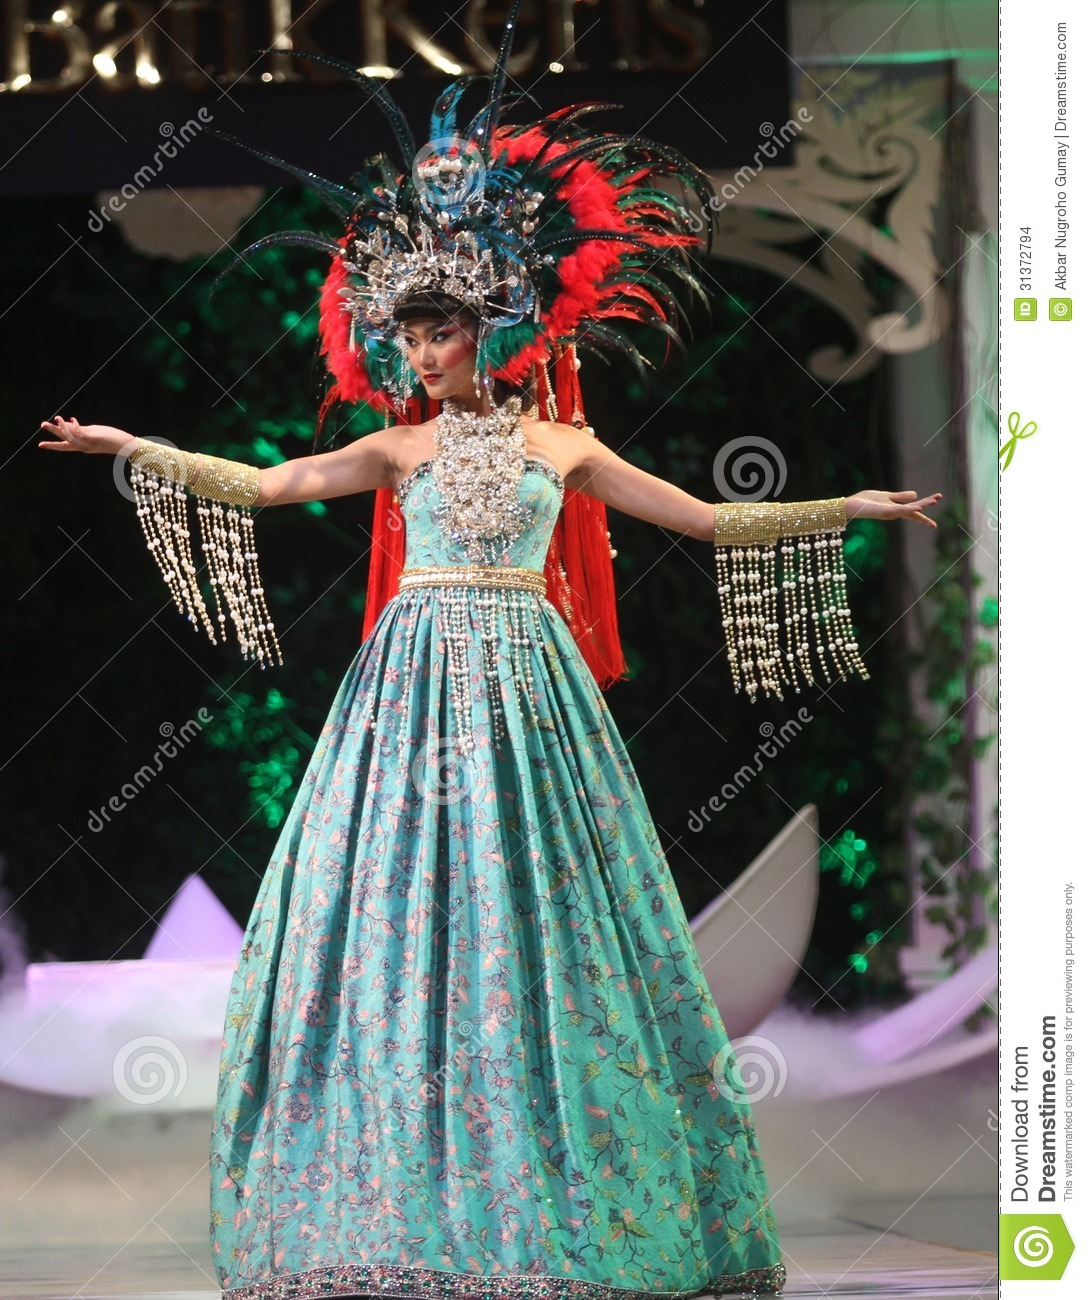 Batik Keris Sukoharjo Solo: Asian Female Model Wearing Batik At Fashion Show Runway